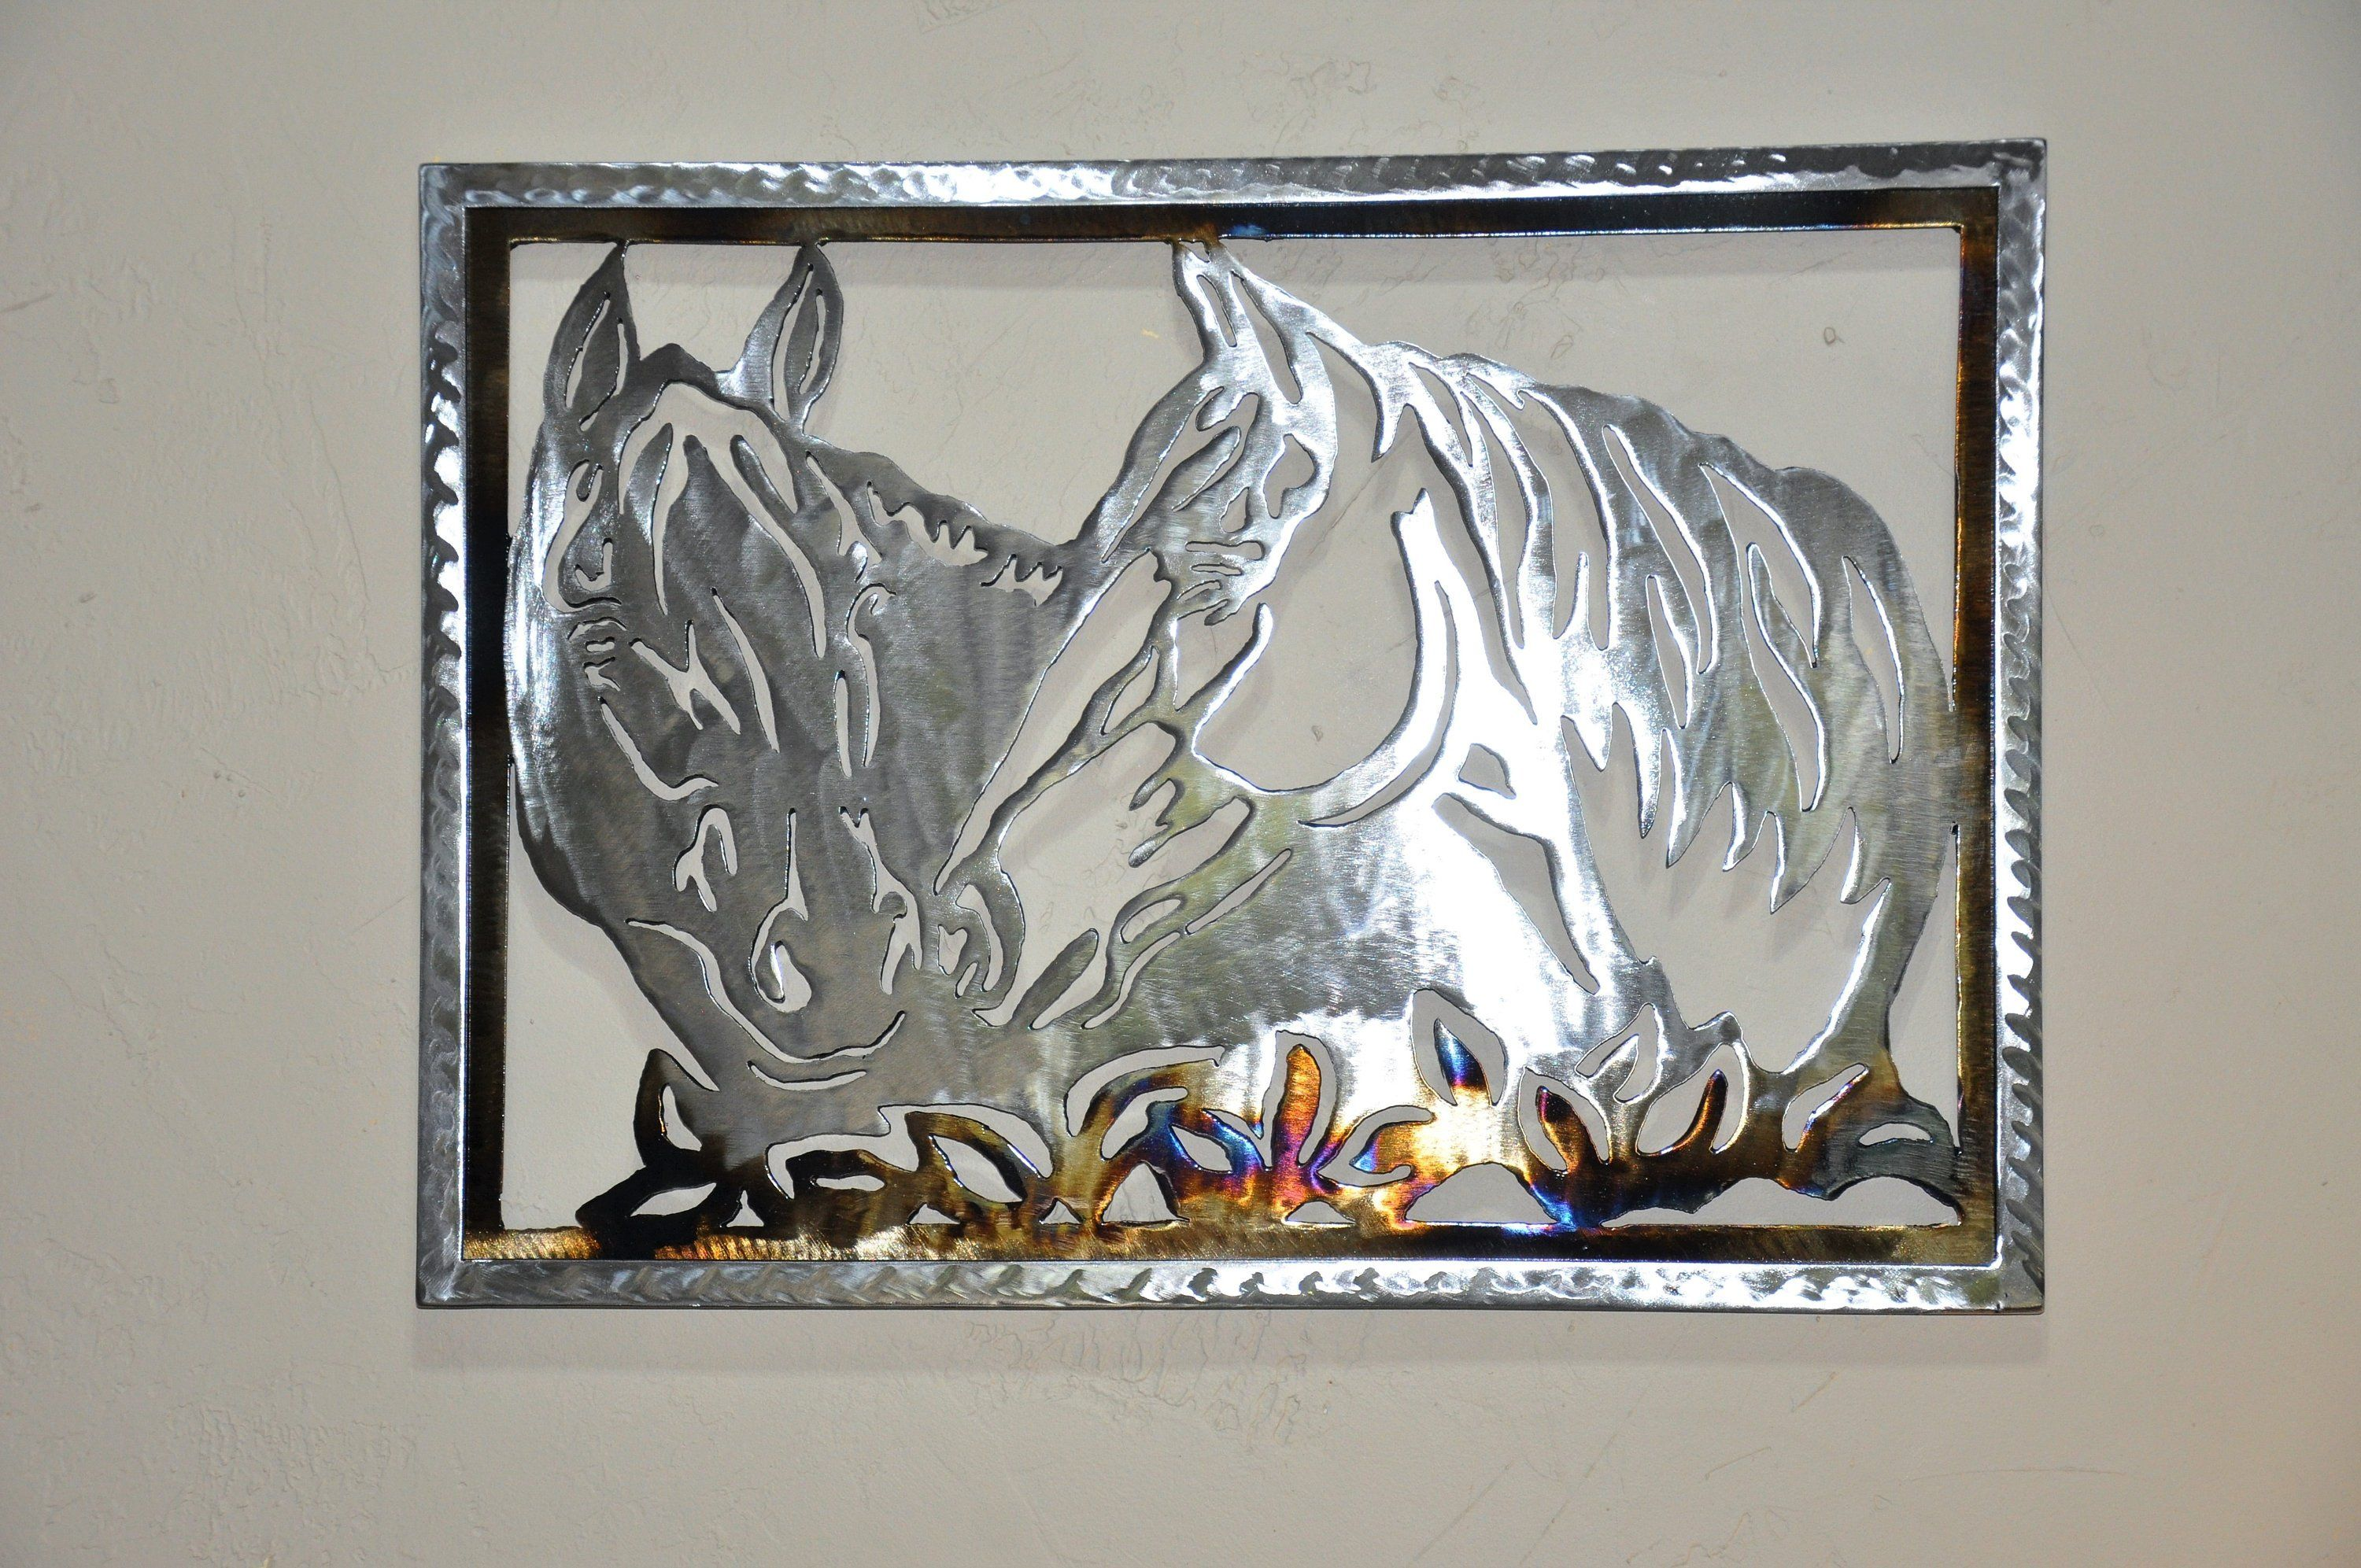 Decoration Murale Cheval Metal Art Wall Art Metal Horse Contemporary Wall Sculpture In